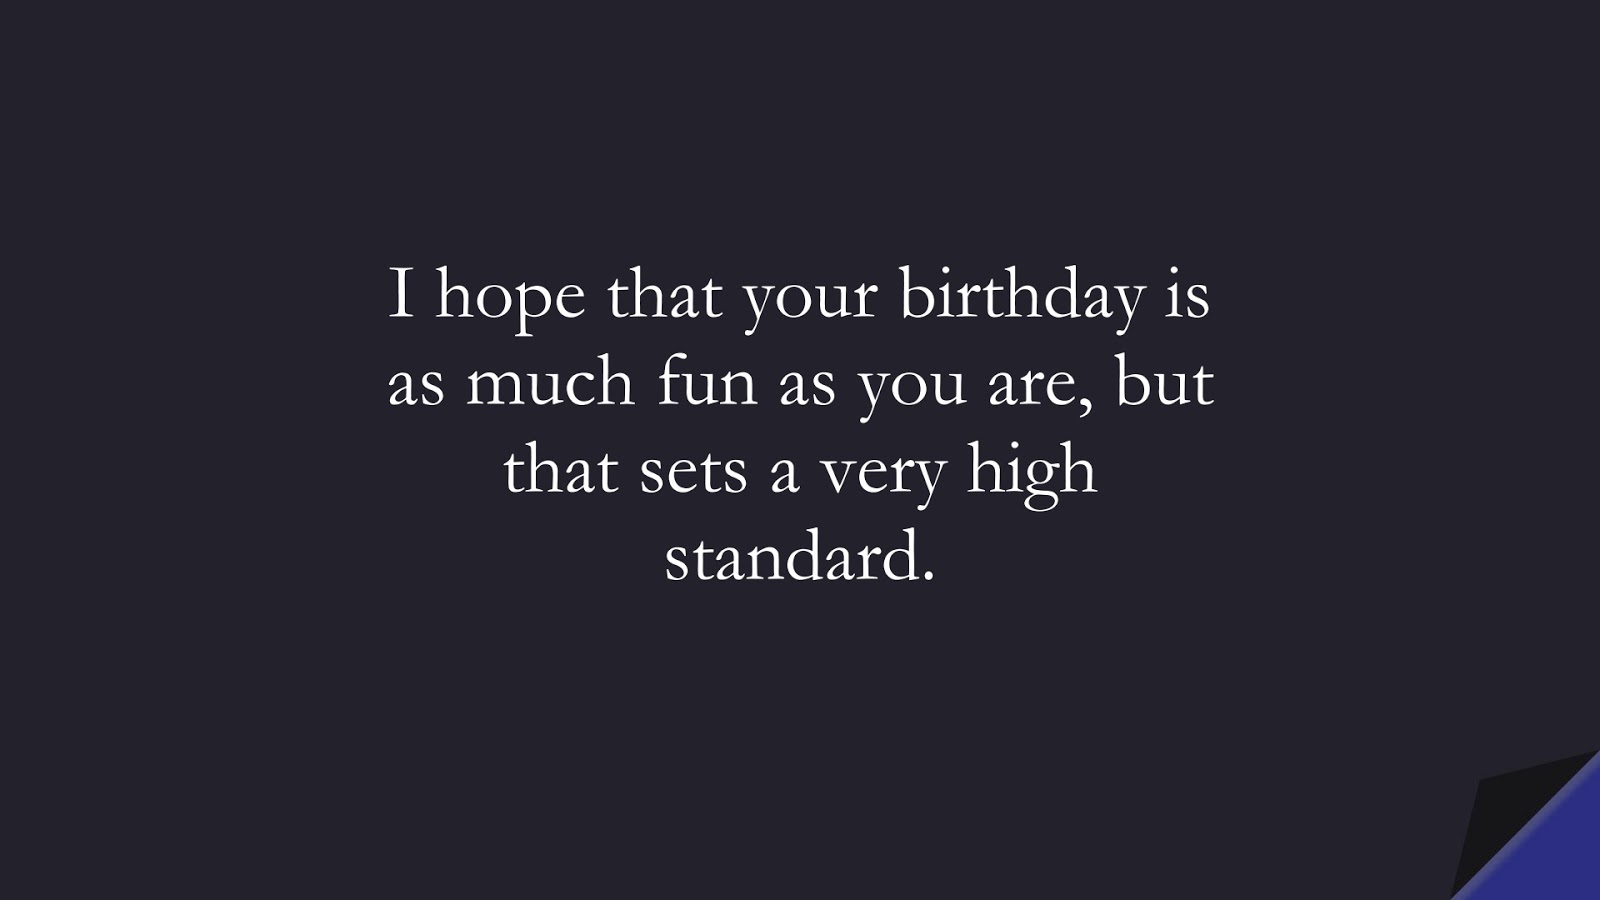 I hope that your birthday is as much fun as you are, but that sets a very high standard.FALSE